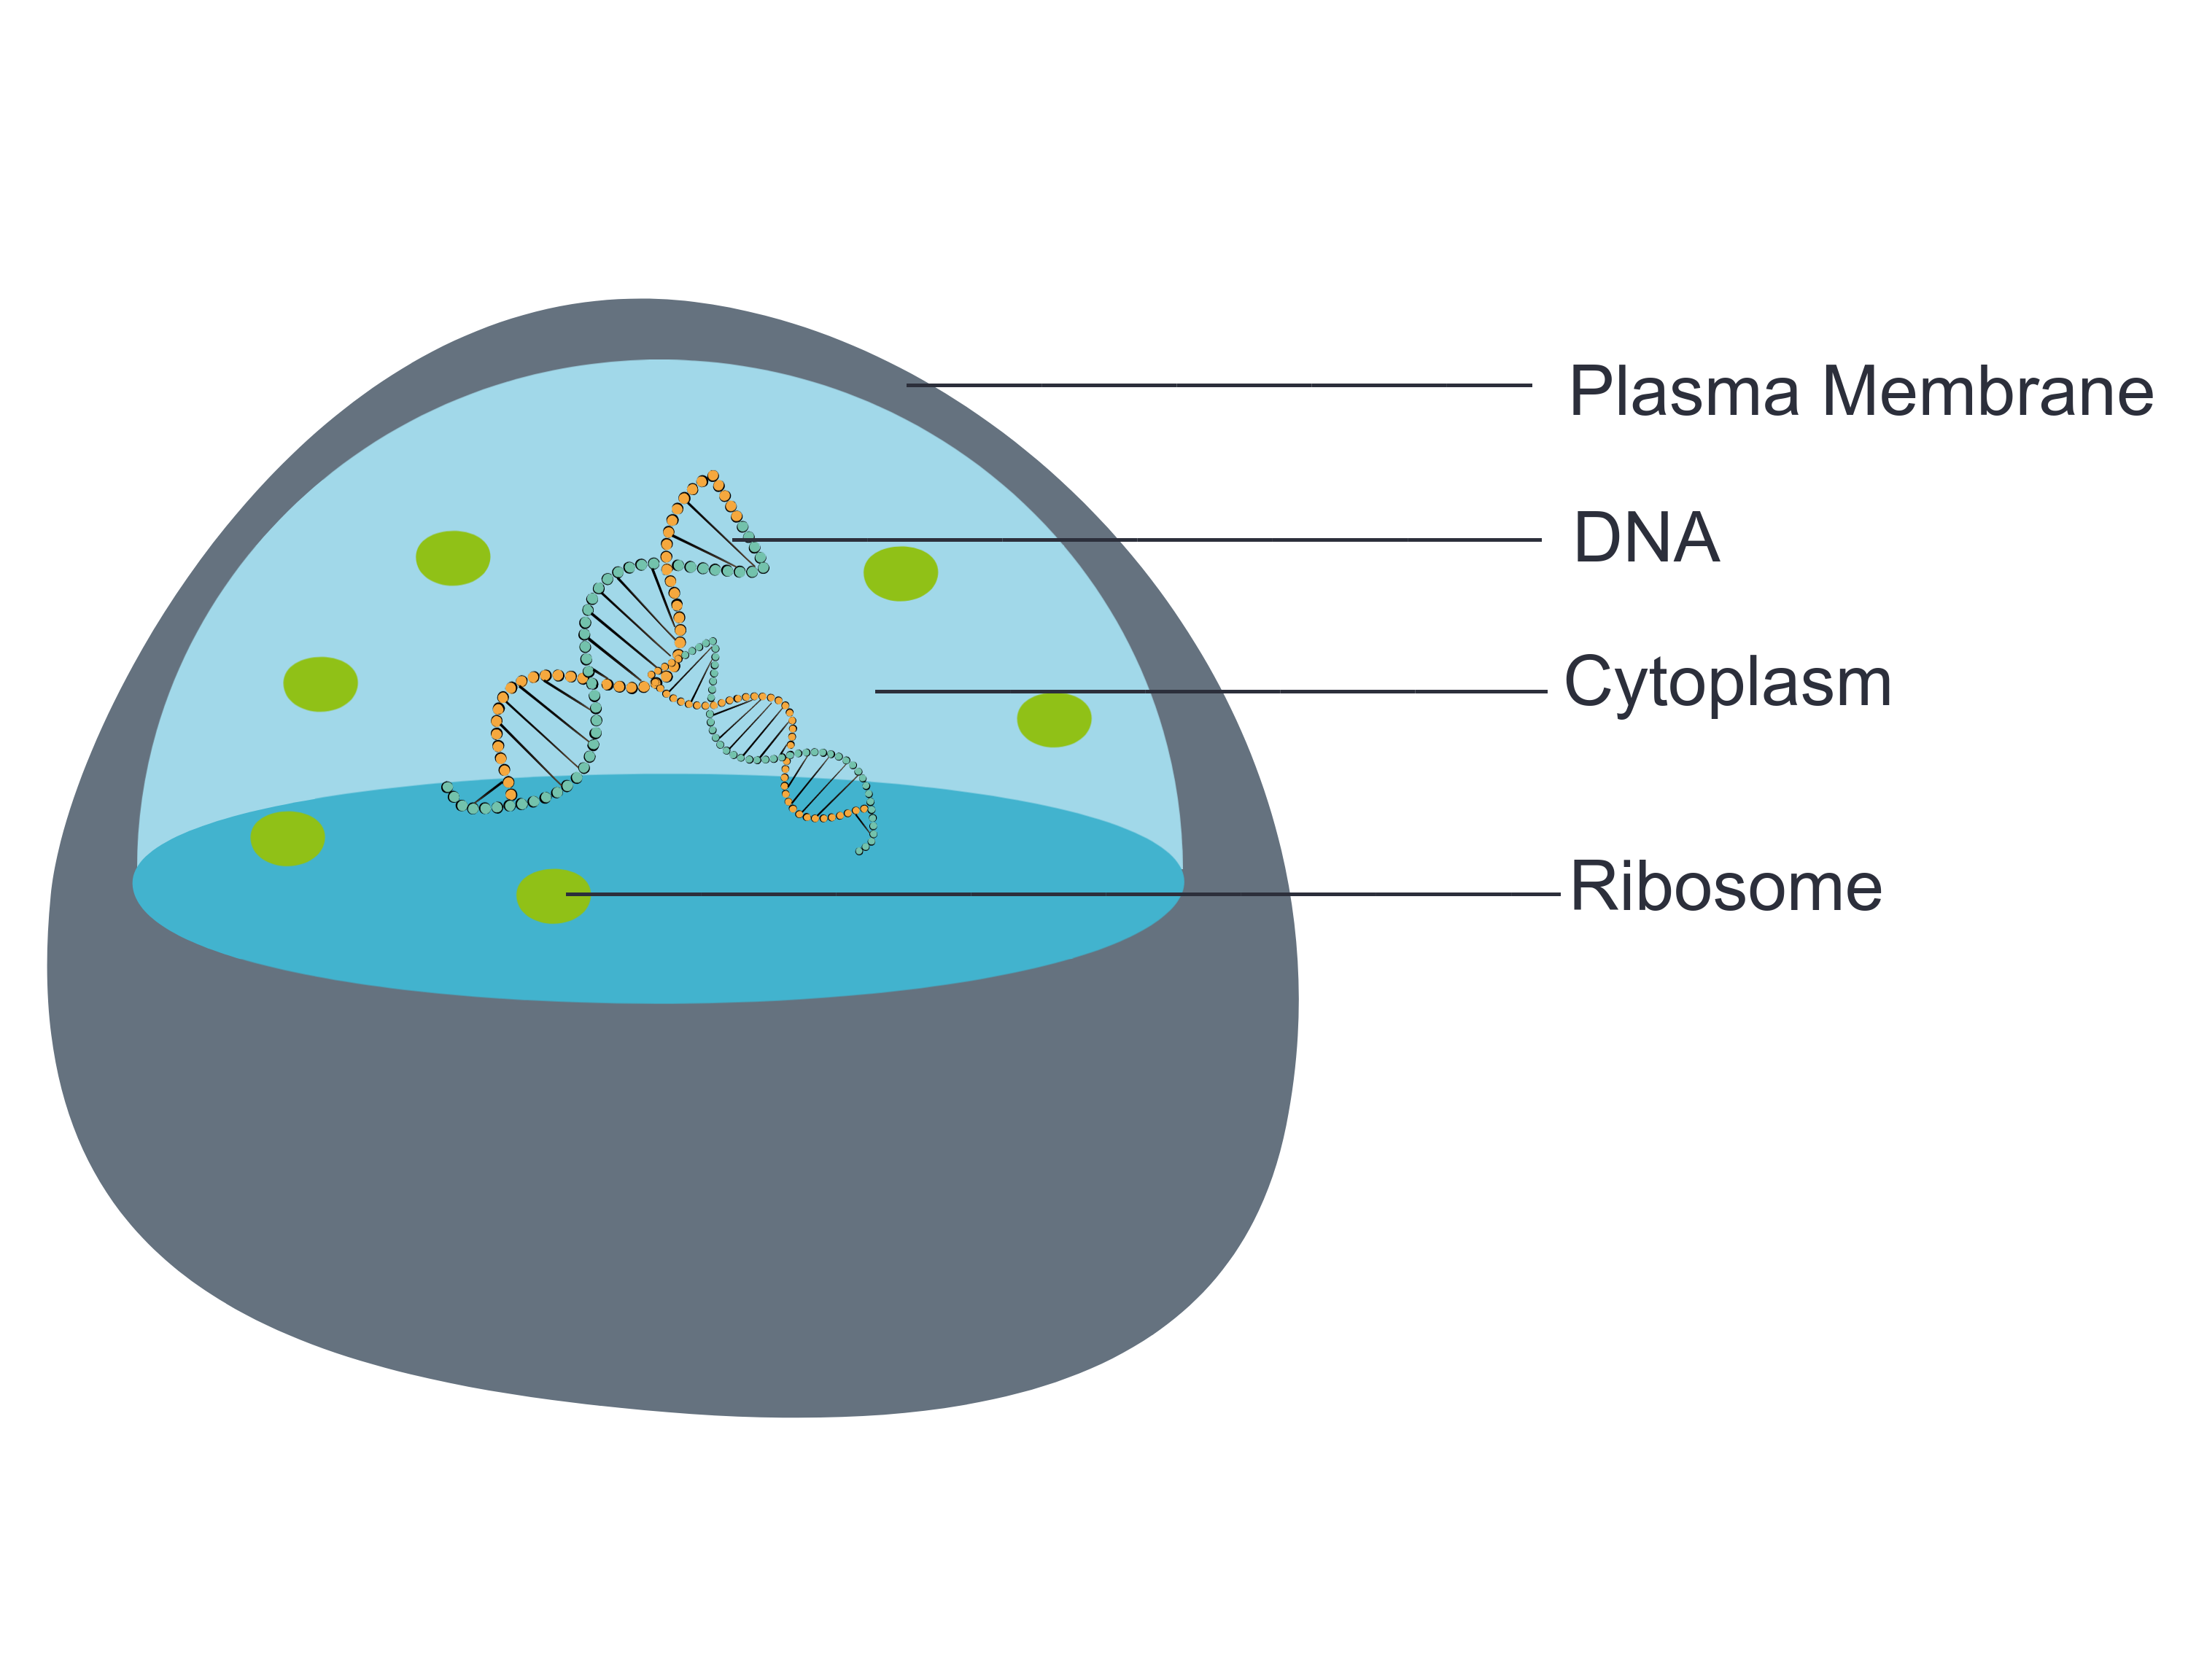 Image shows a diagram of a cell containing the four basic components of a cell: a plasma membrane, DNA, ribosomes and a cytoplasm.